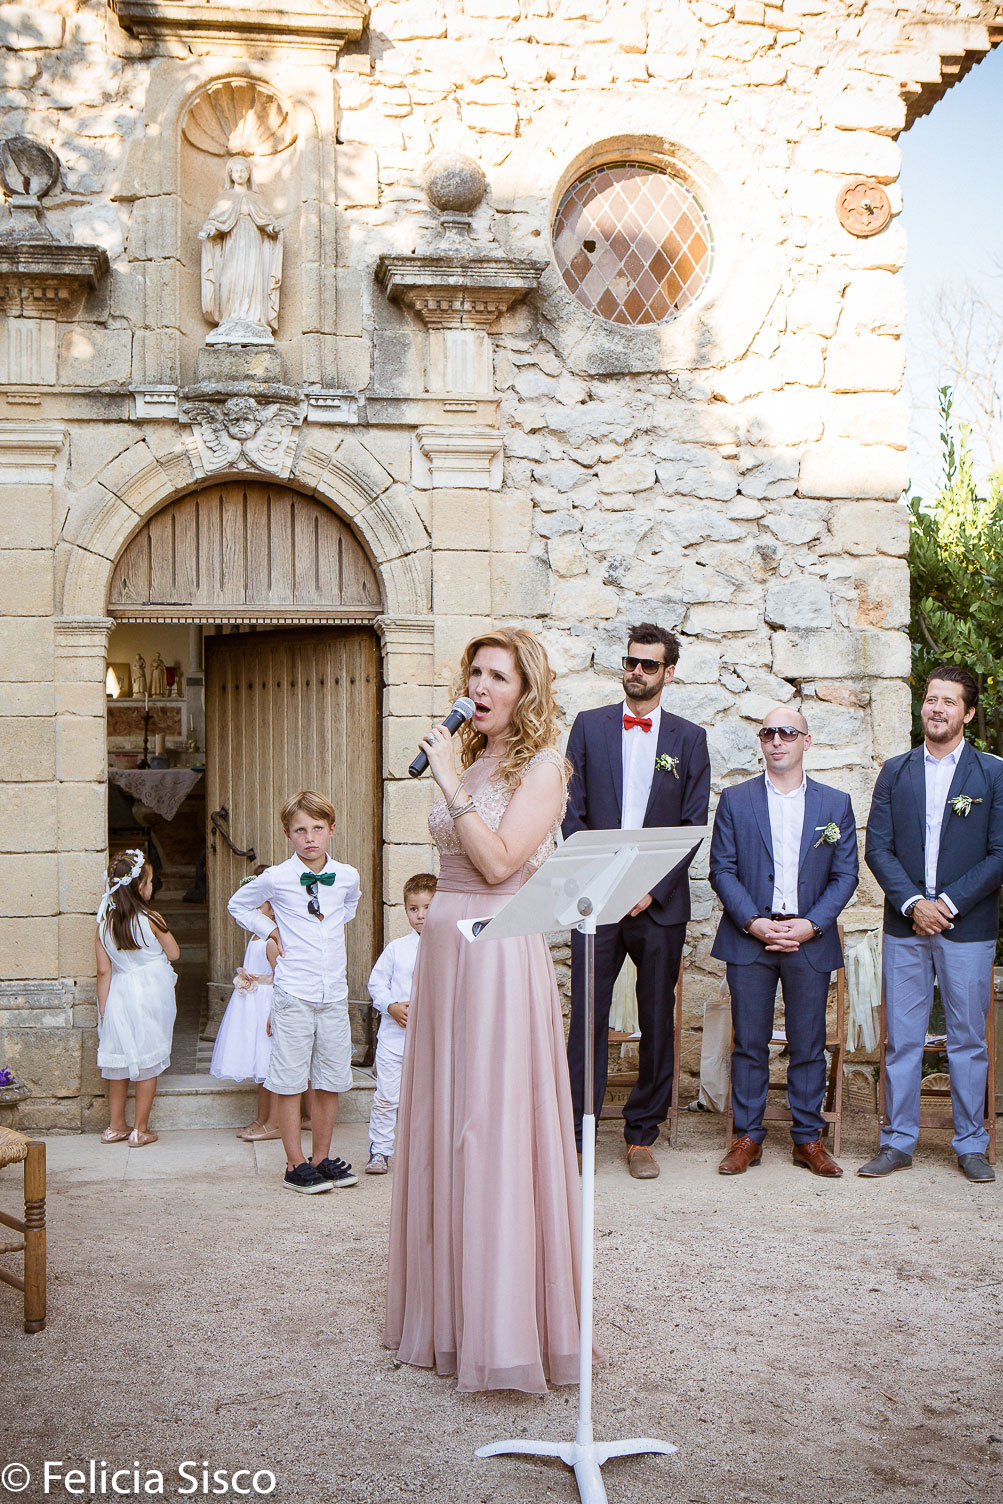 aria in France wedding celebrant singer